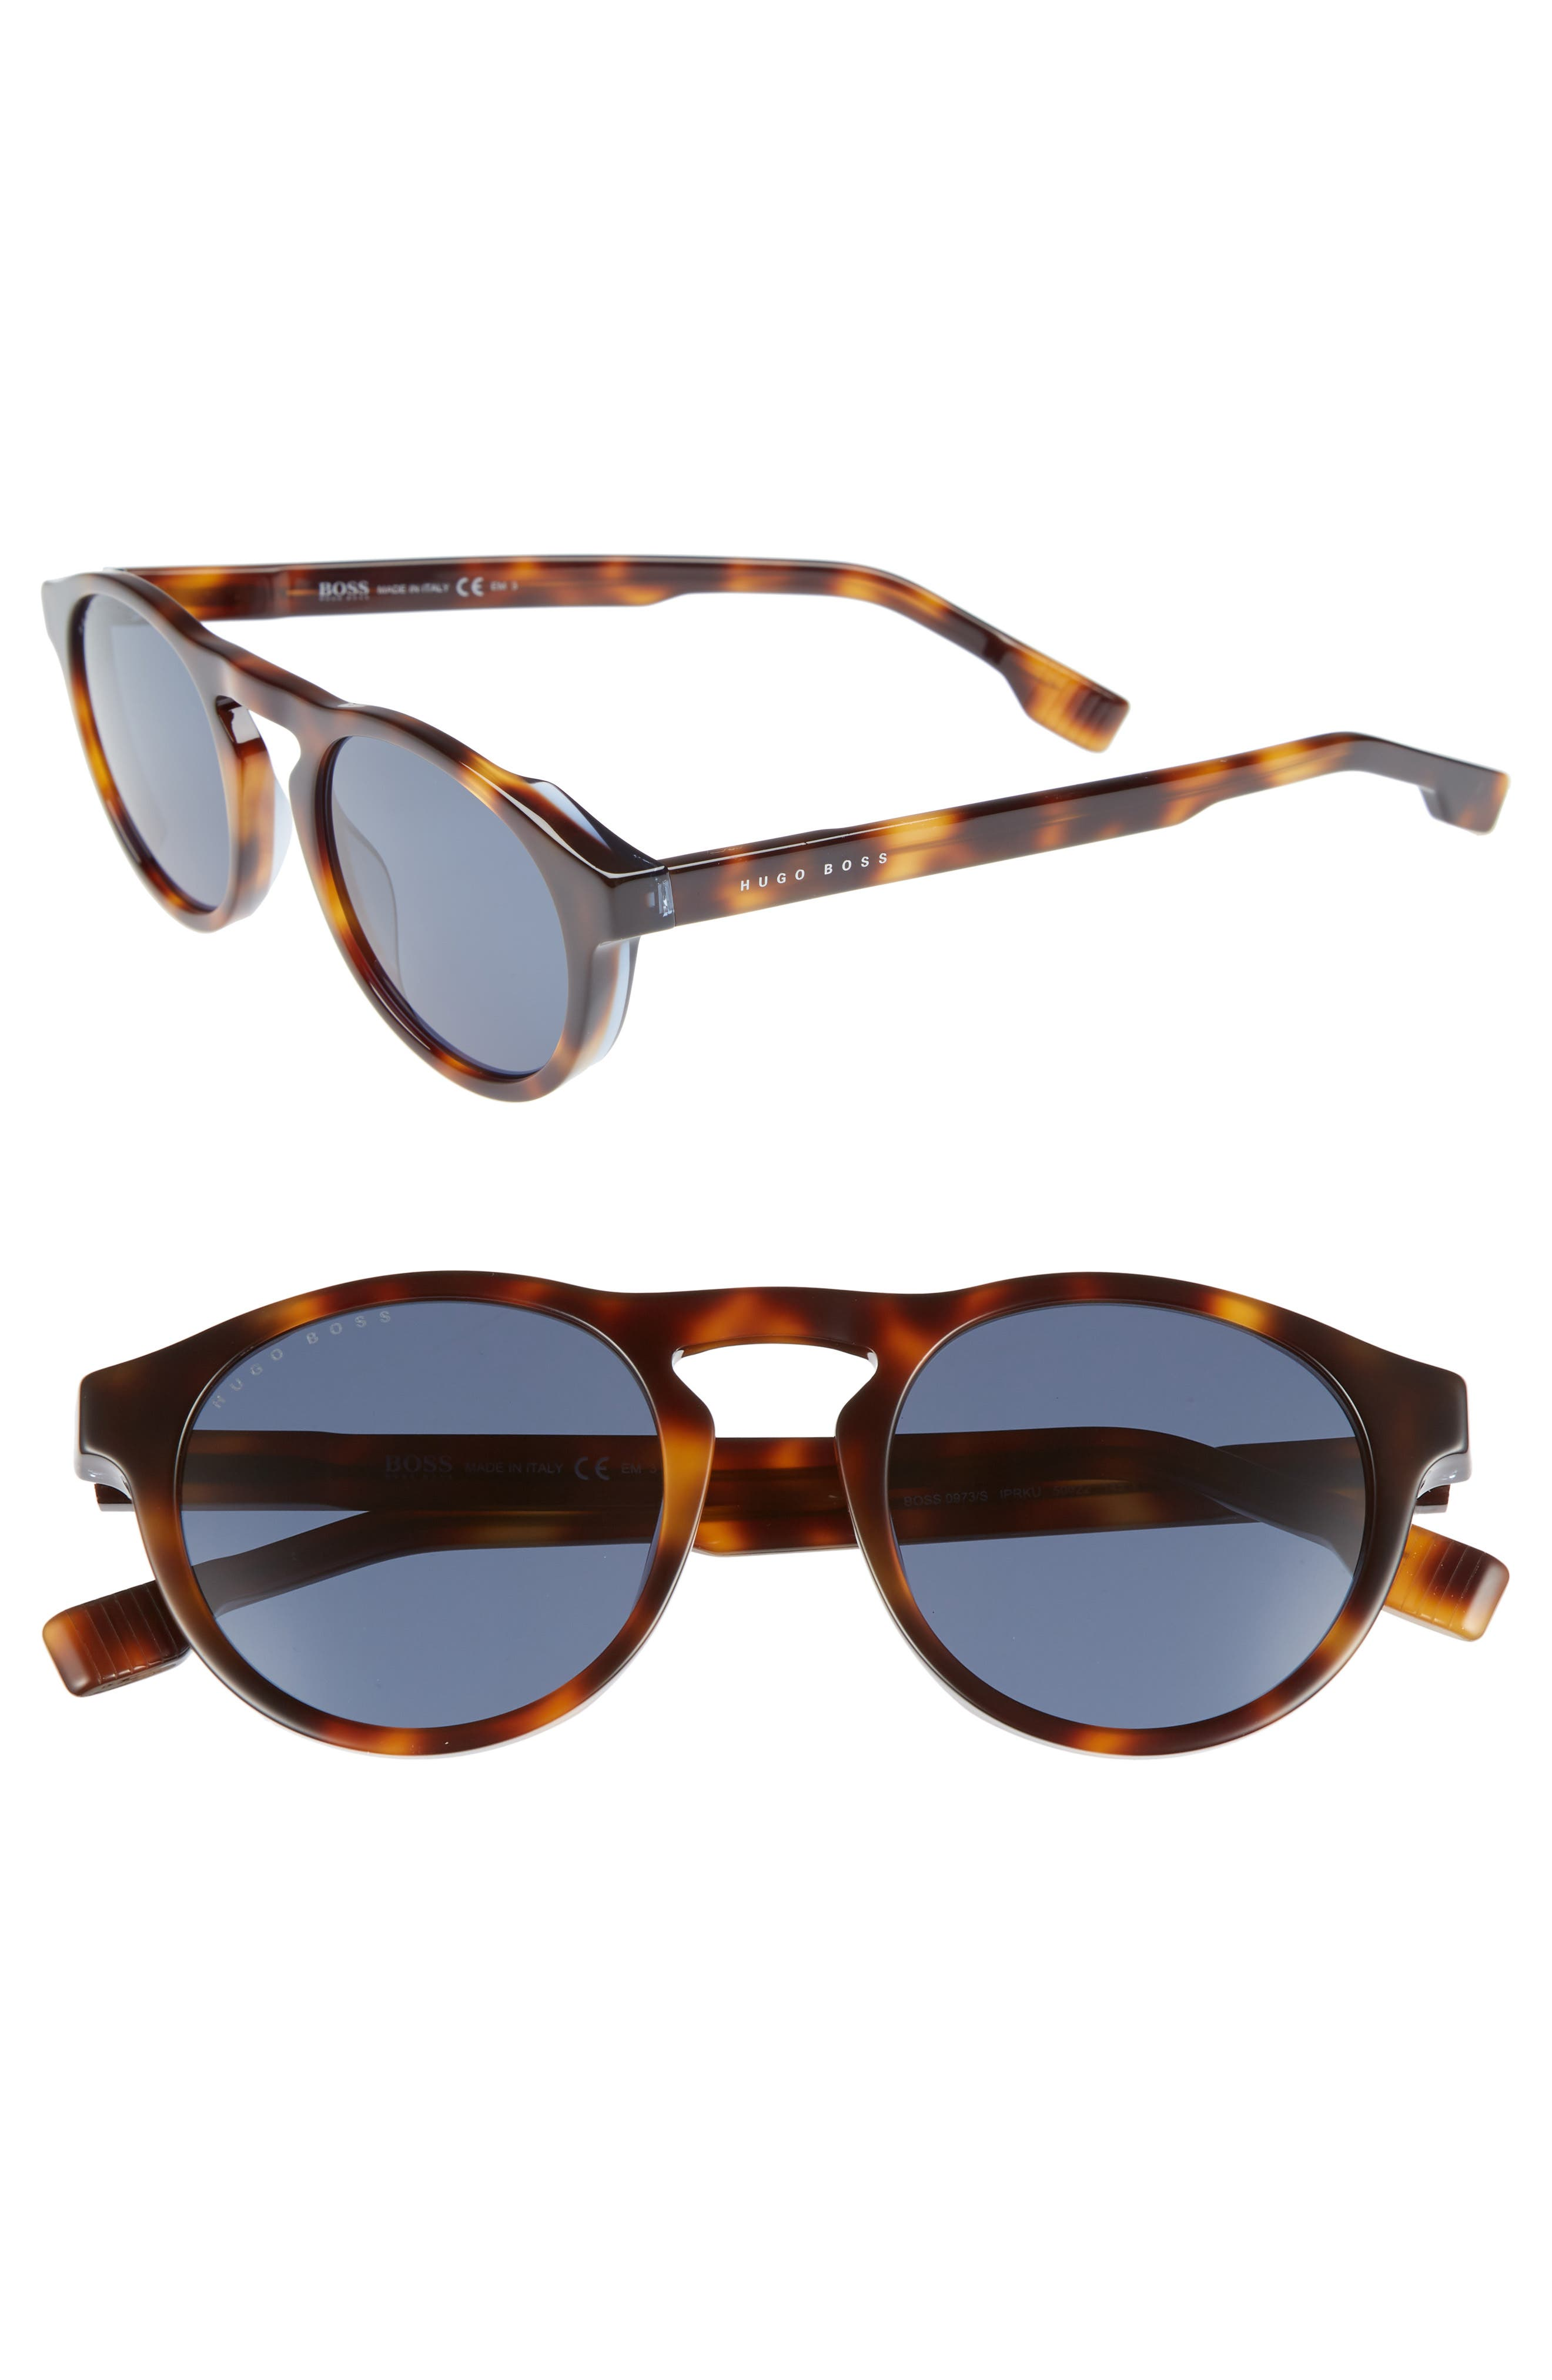 50mm Polarized Round Sunglasses,                             Main thumbnail 1, color,                             HAVANA/ BLUE